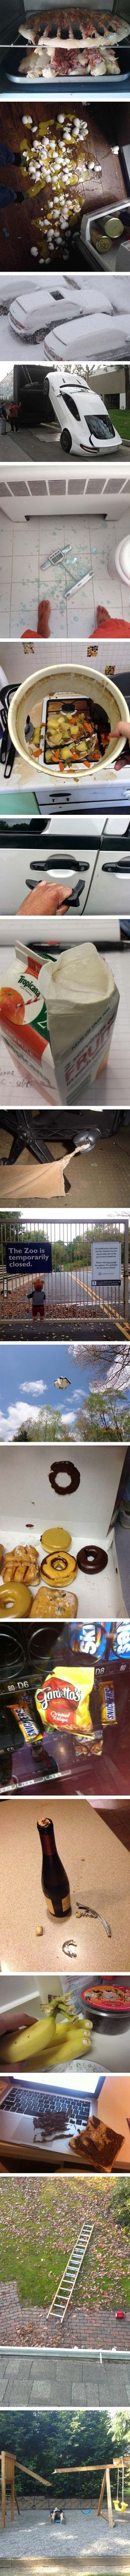 Your day could be worse. I'm not sure if the little boy at the zoo is the worst, or the donut with no frosting...